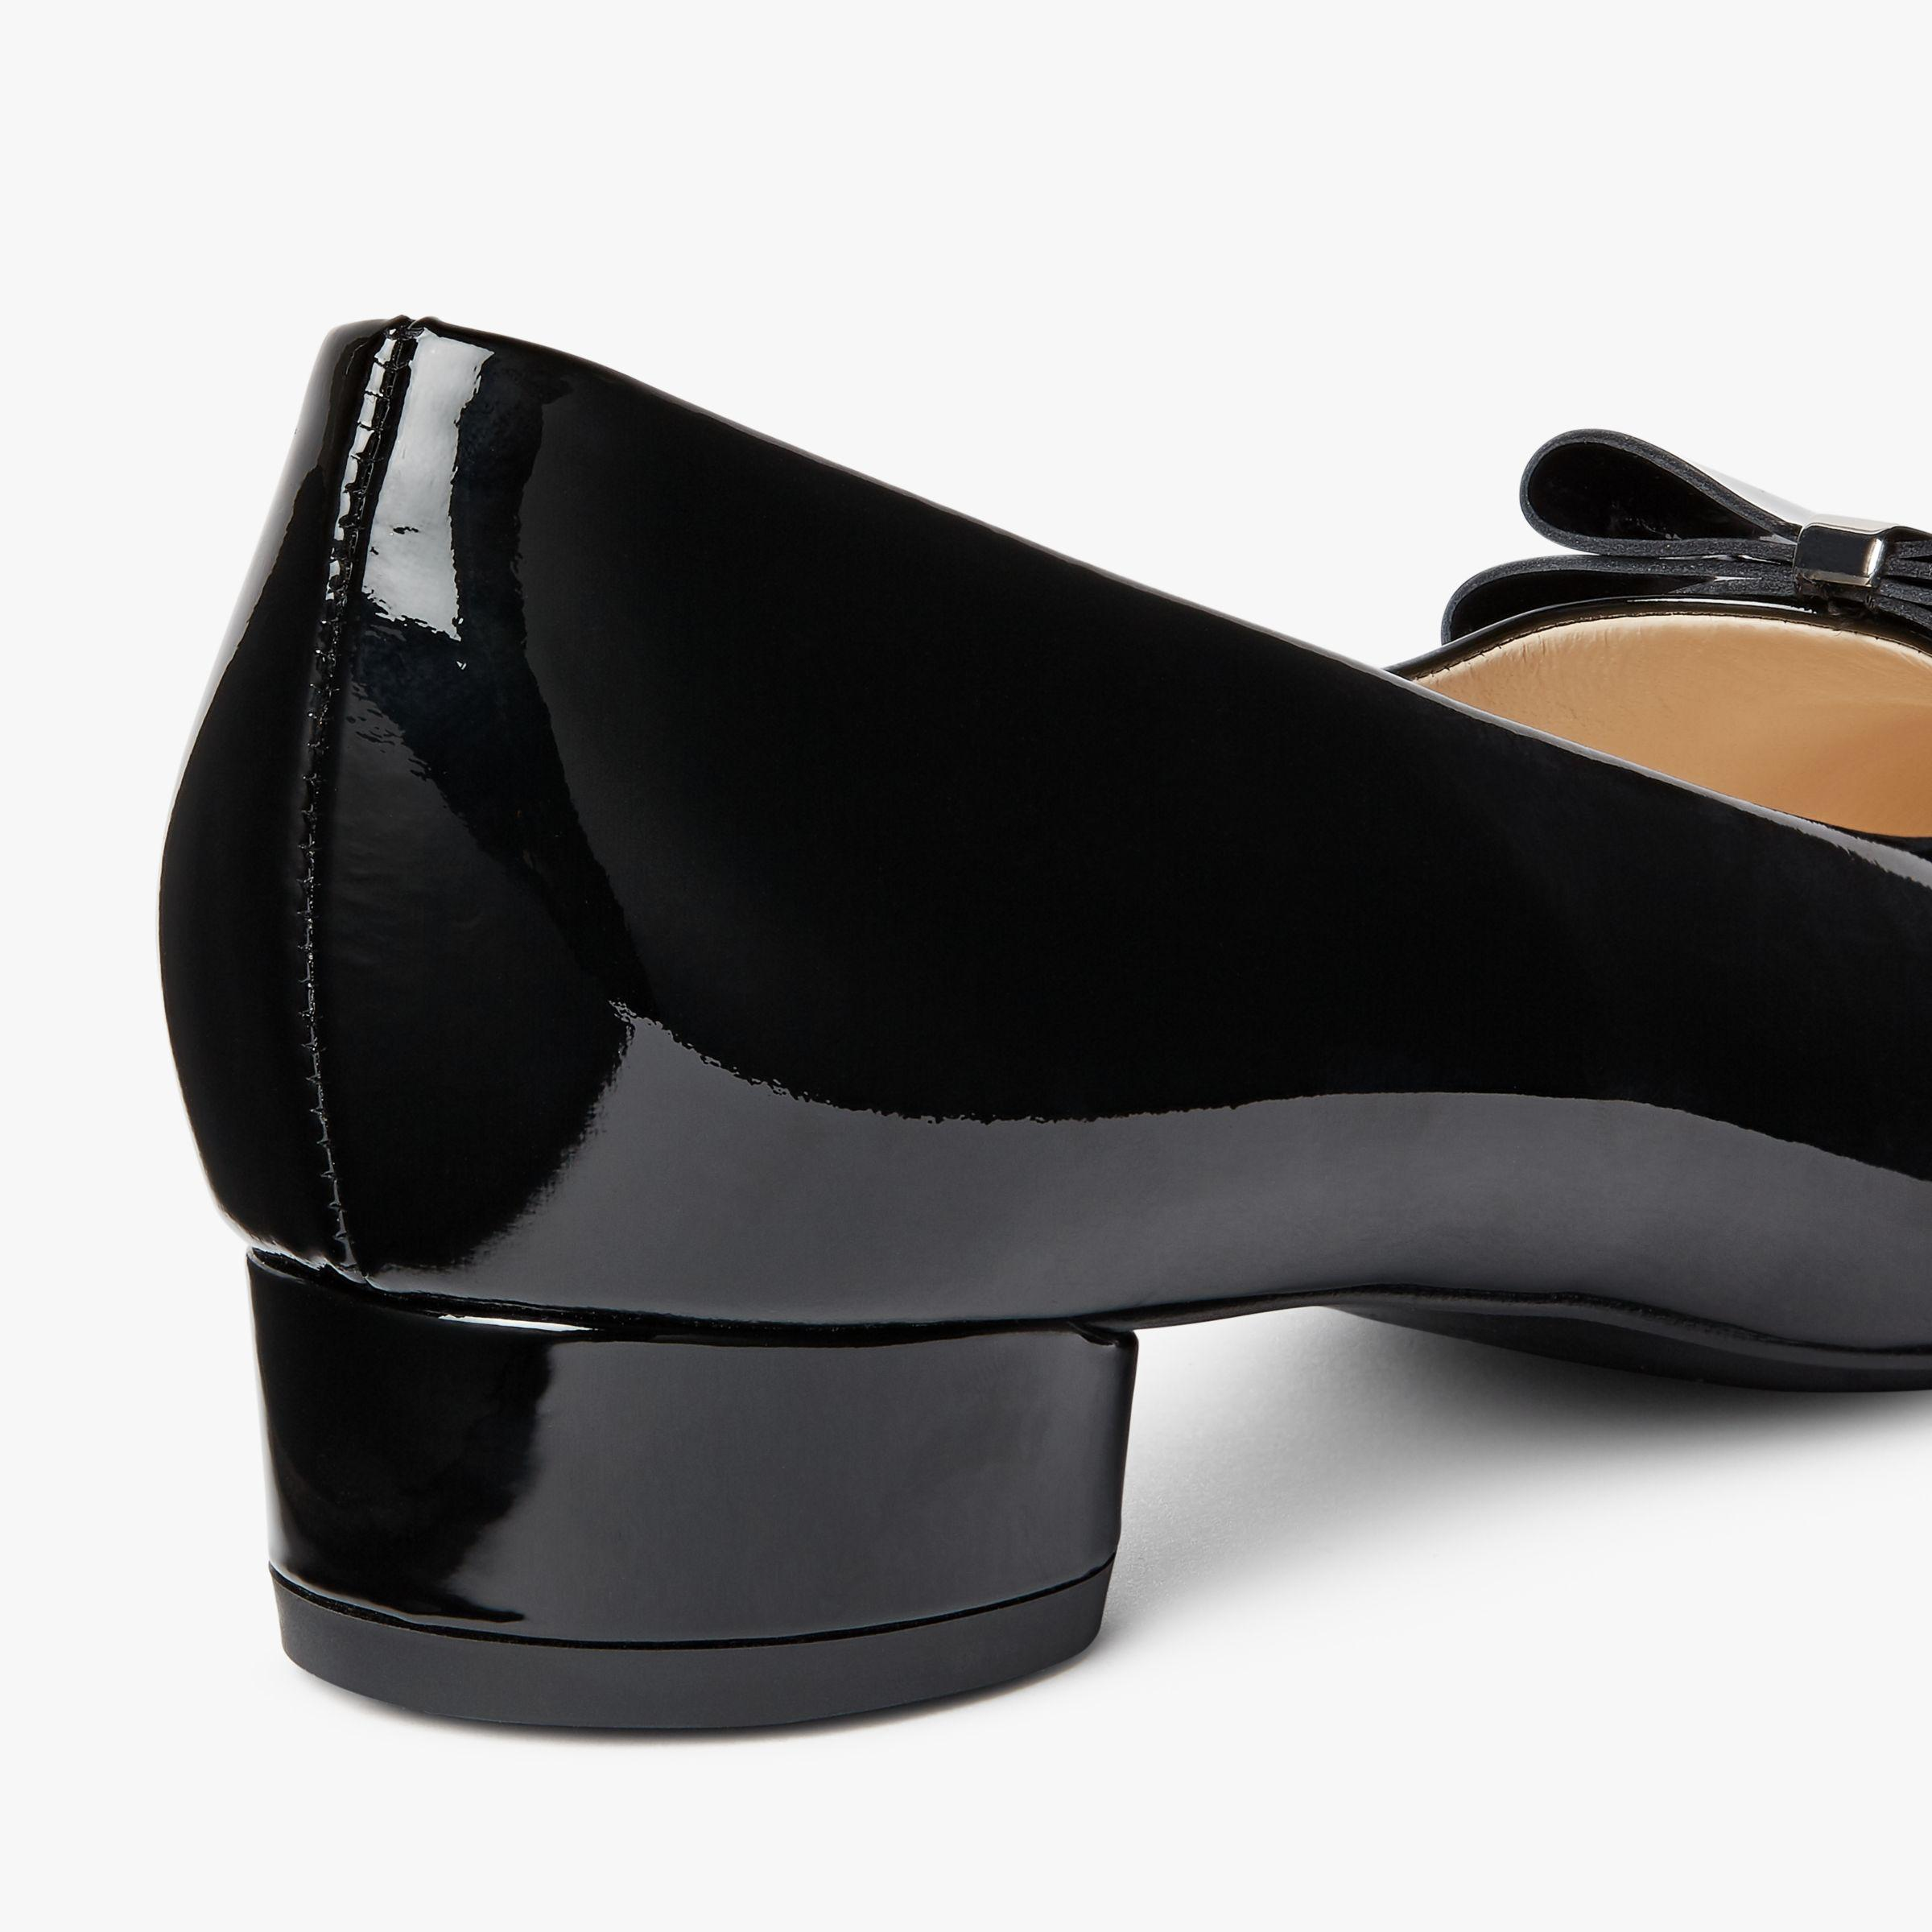 d79d5ebe8f24 Peter Kaiser Esra Low Heel Bow Court Shoes in Black - Lyst